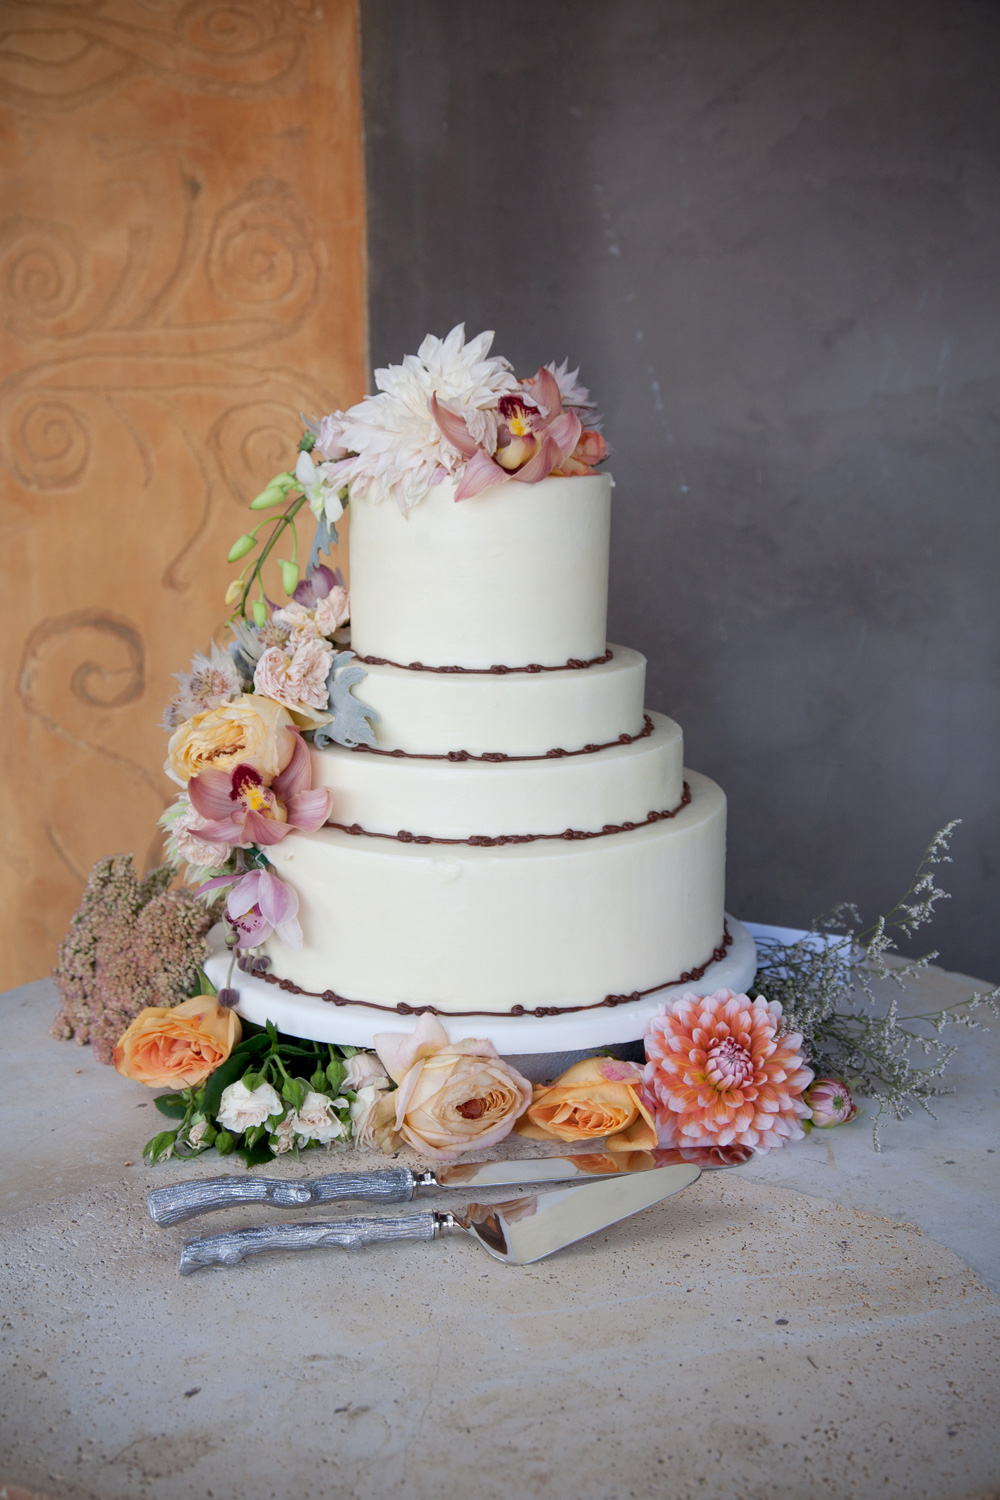 The wedding cake from Flour Chylde Bakery